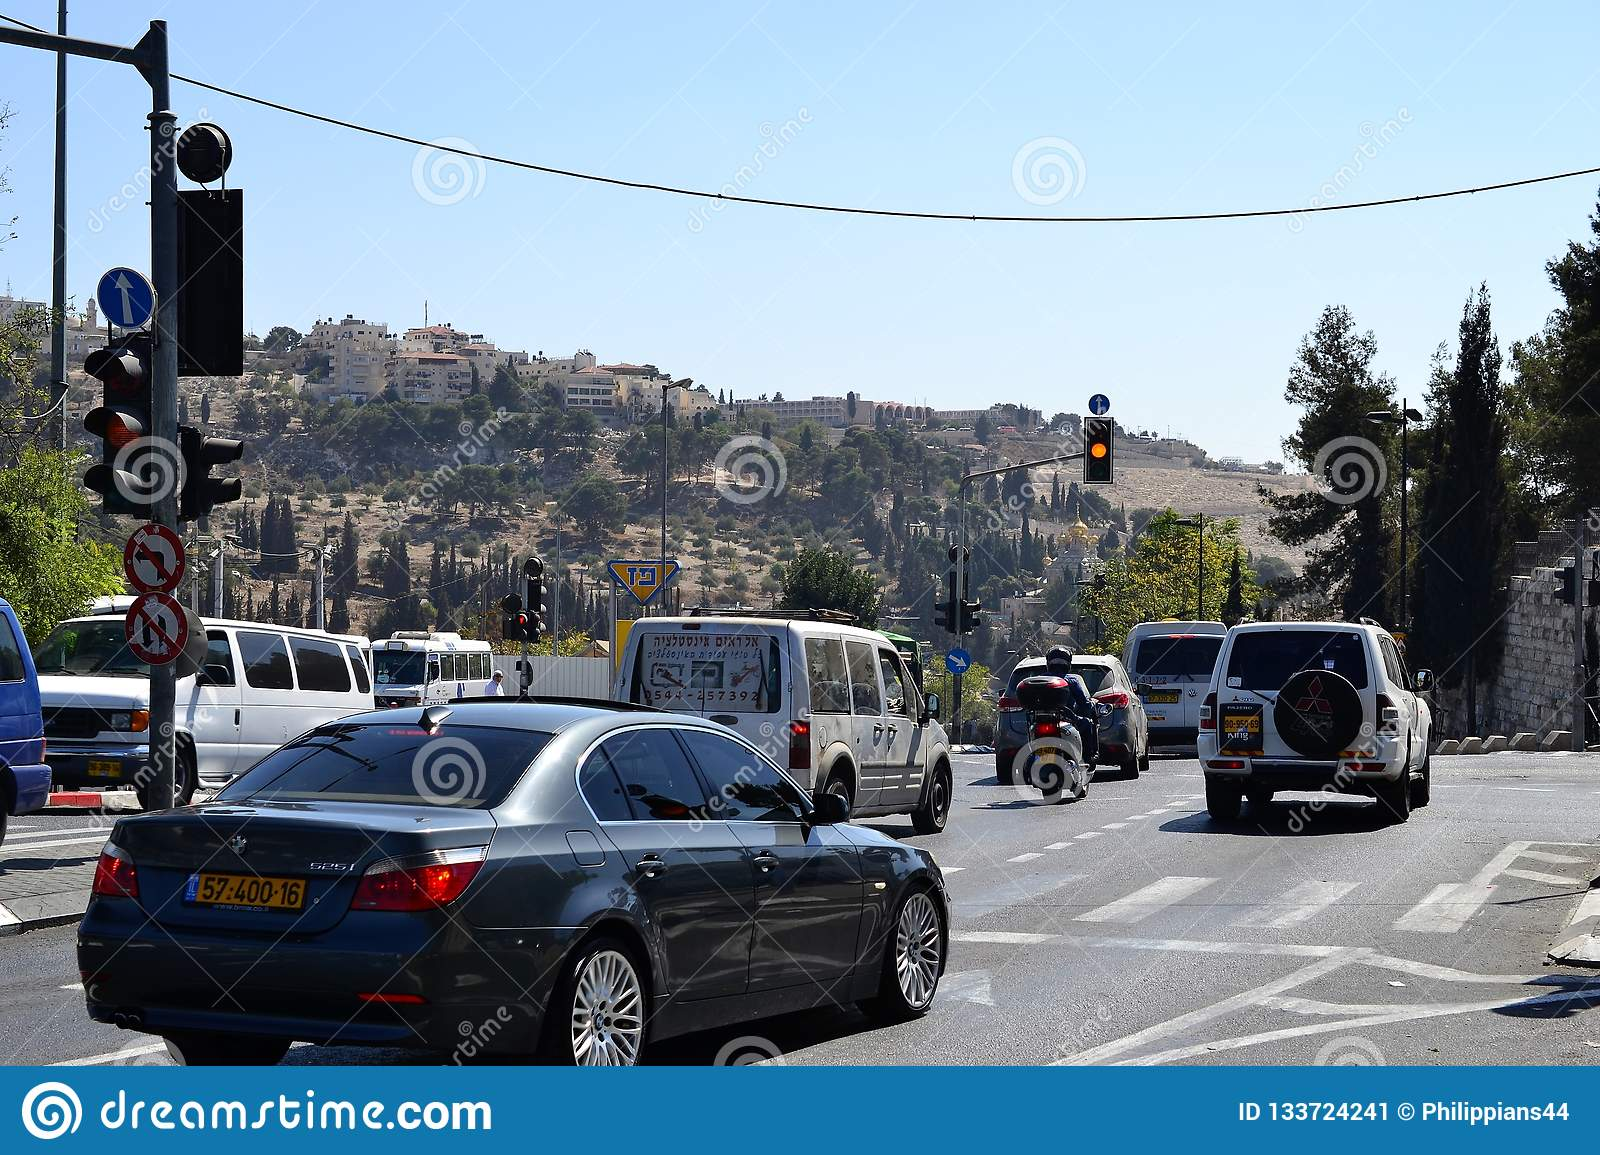 Jerusalem, Israel, cars in the east part of the city, Mount of Olives in the background, close to old city